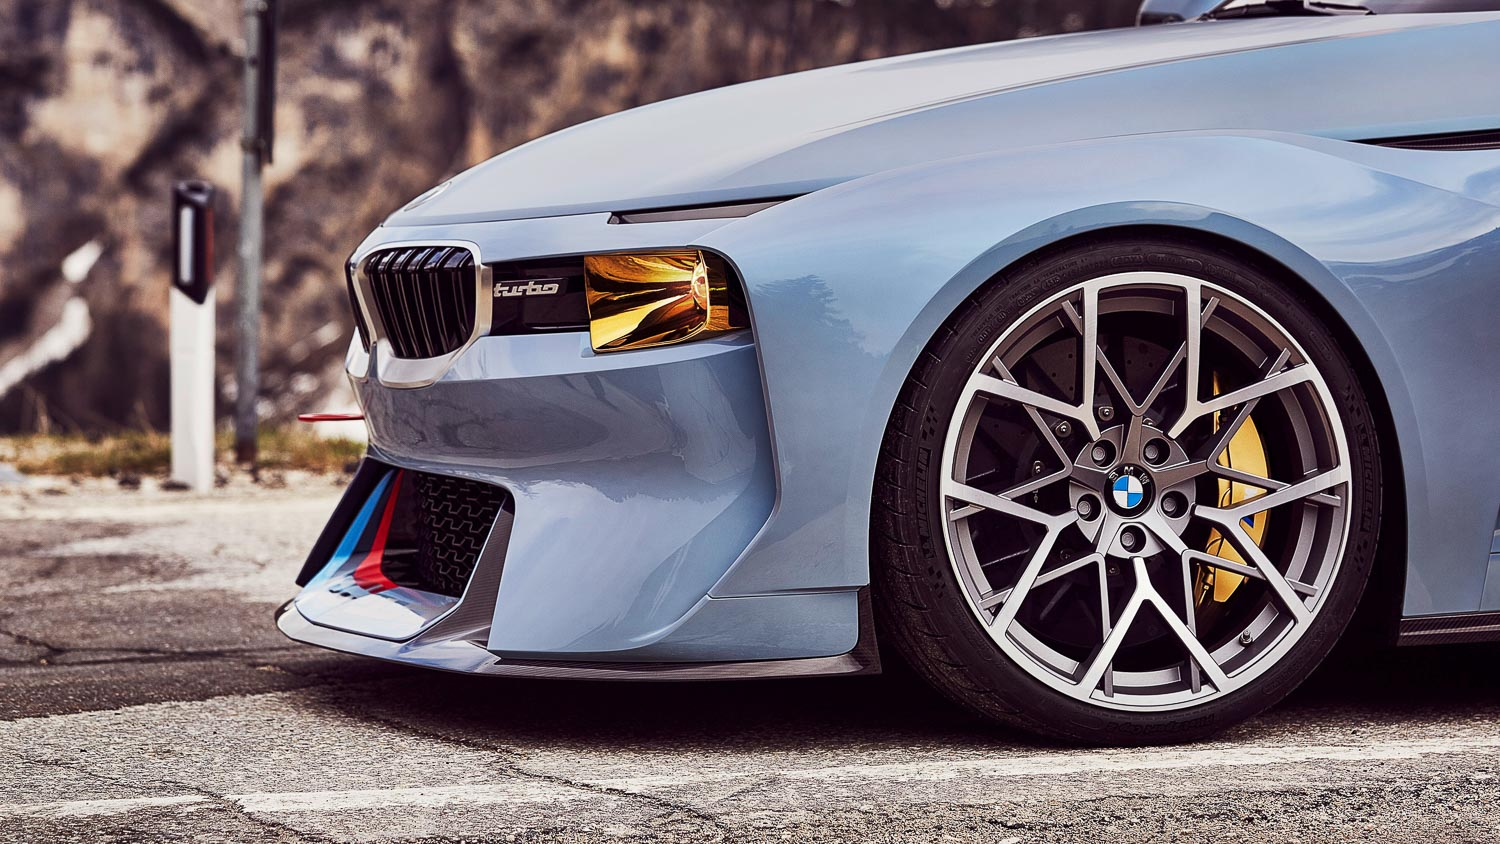 Bmw 2002 Homage Take A Look At Bmw S Redesigned 2002 Turbo The Motorhood